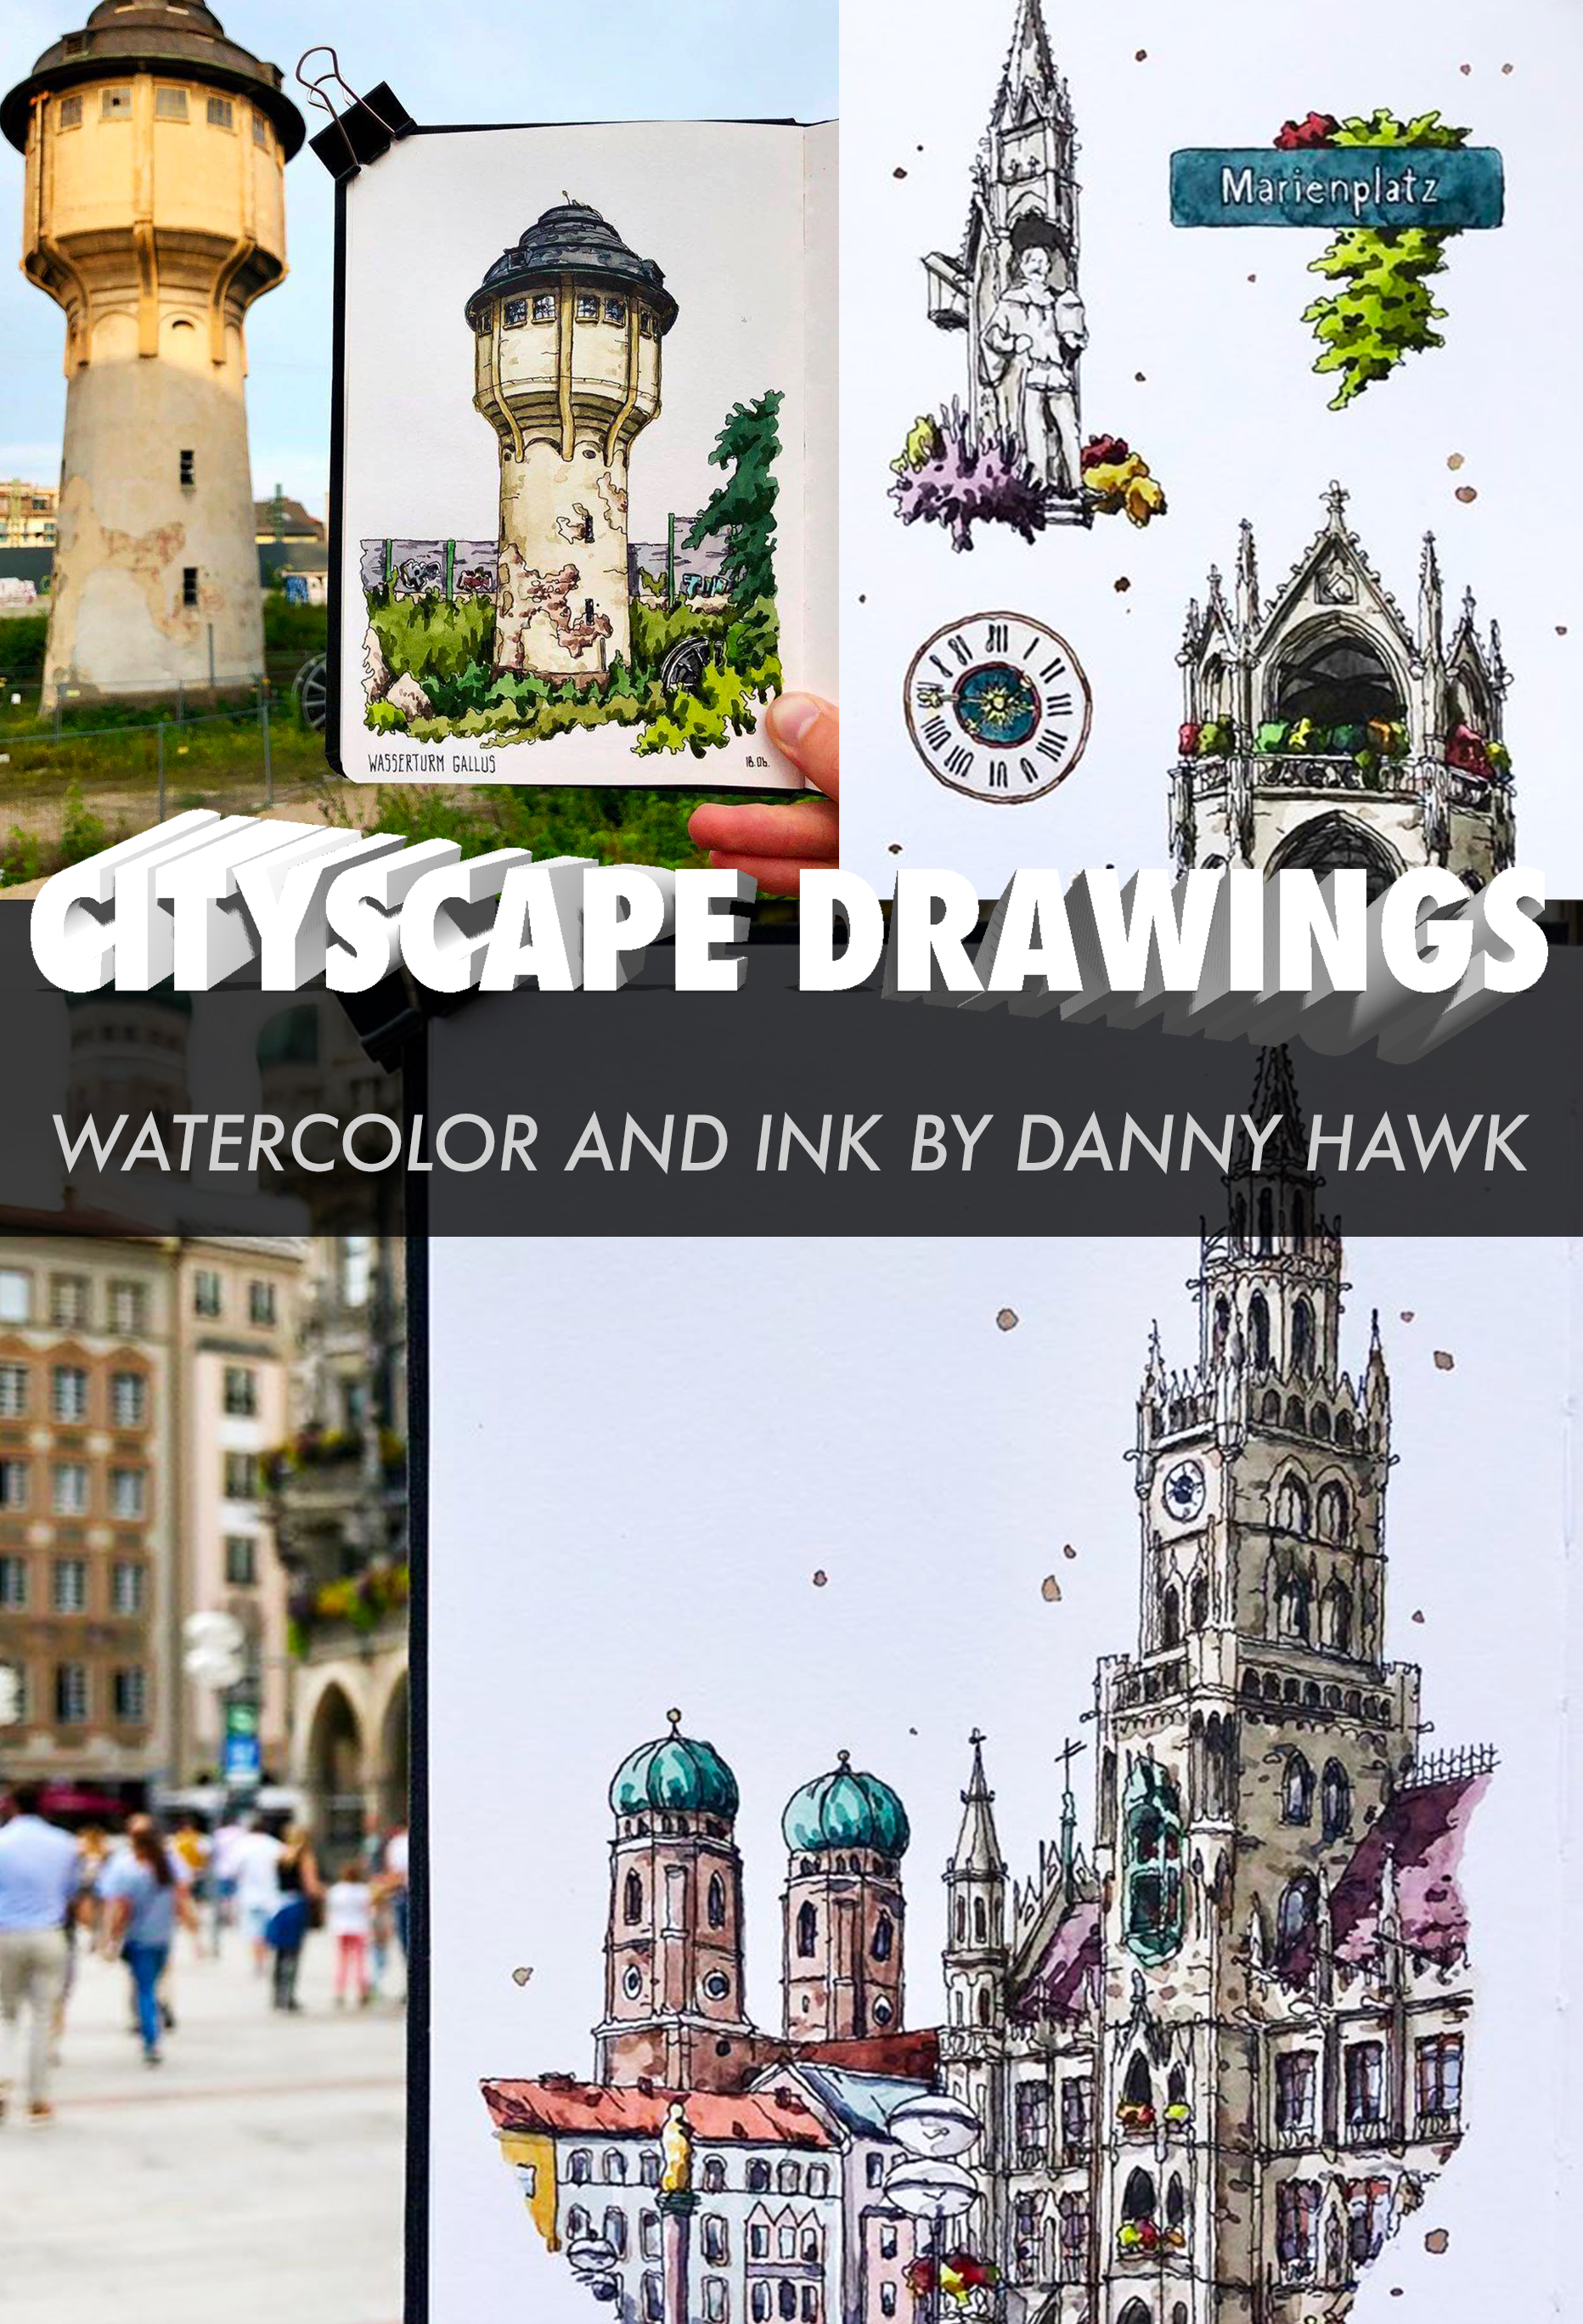 15 Image – Cityscape Drawings With Watercolor And Ink By Danny Hawk